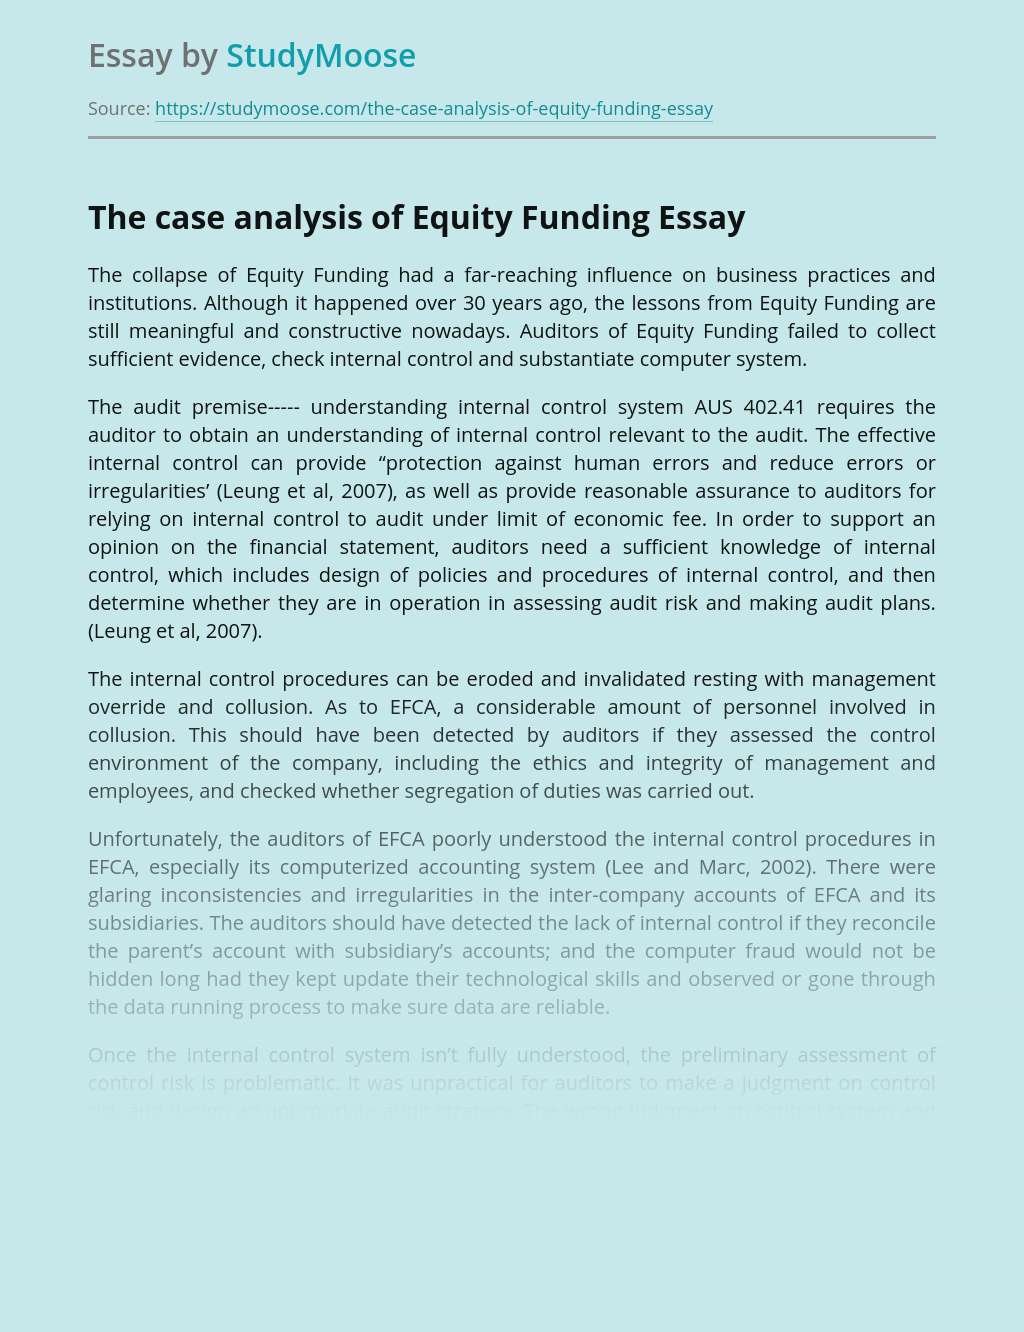 The Case Analysis of Equity Funding